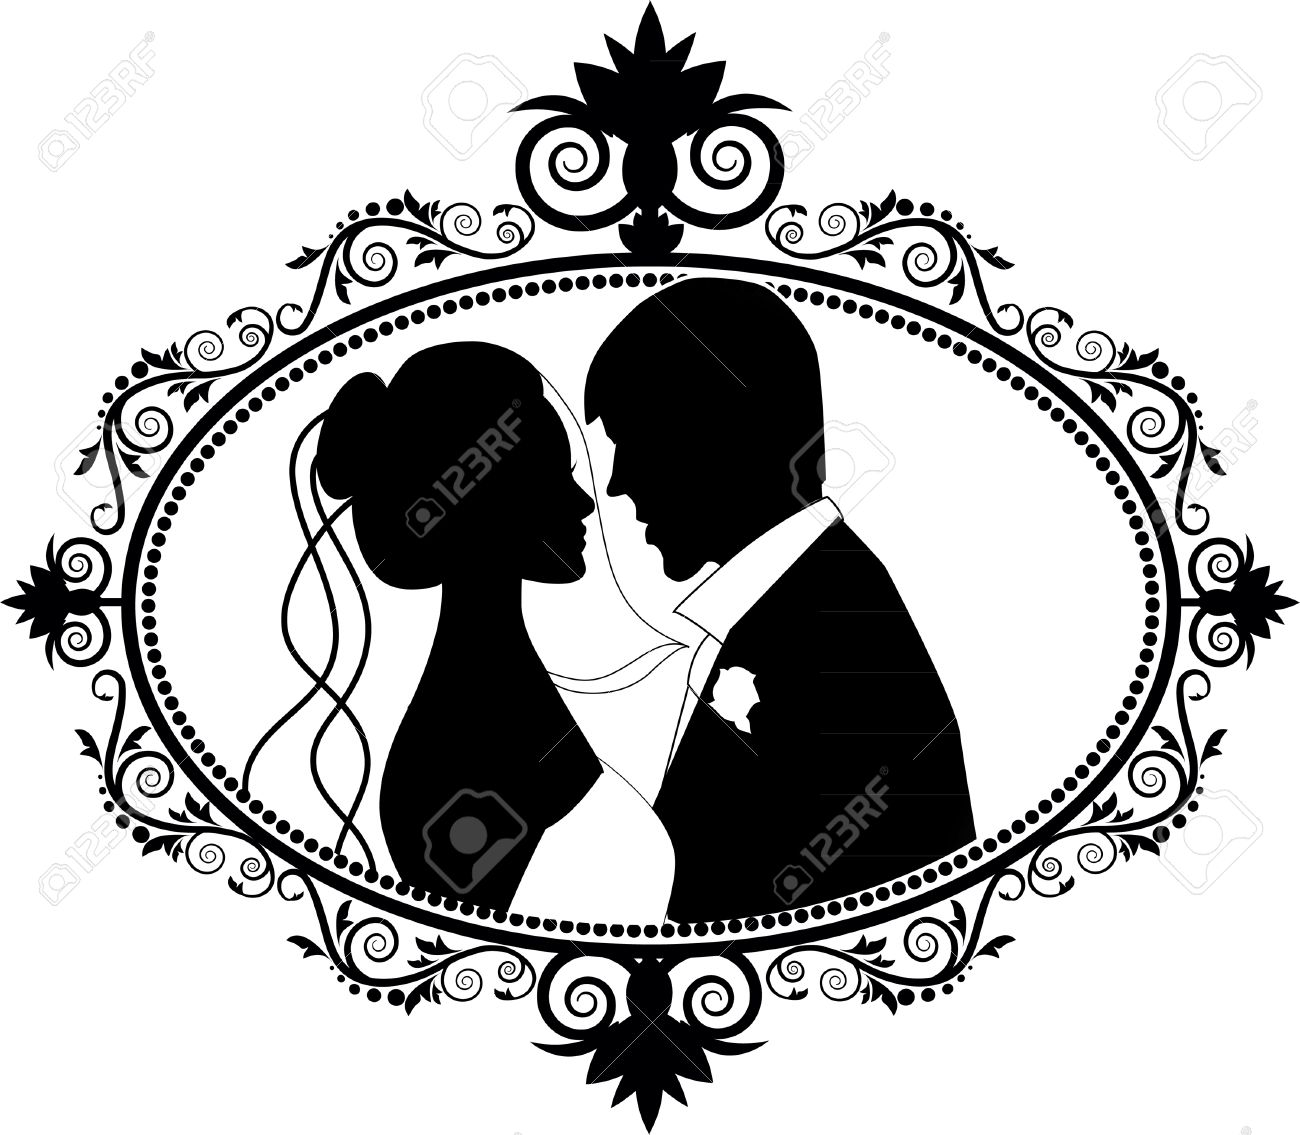 Wedding Couple Silhouettes Royalty Free Cliparts Vectors And Stock Rh 123rf Com